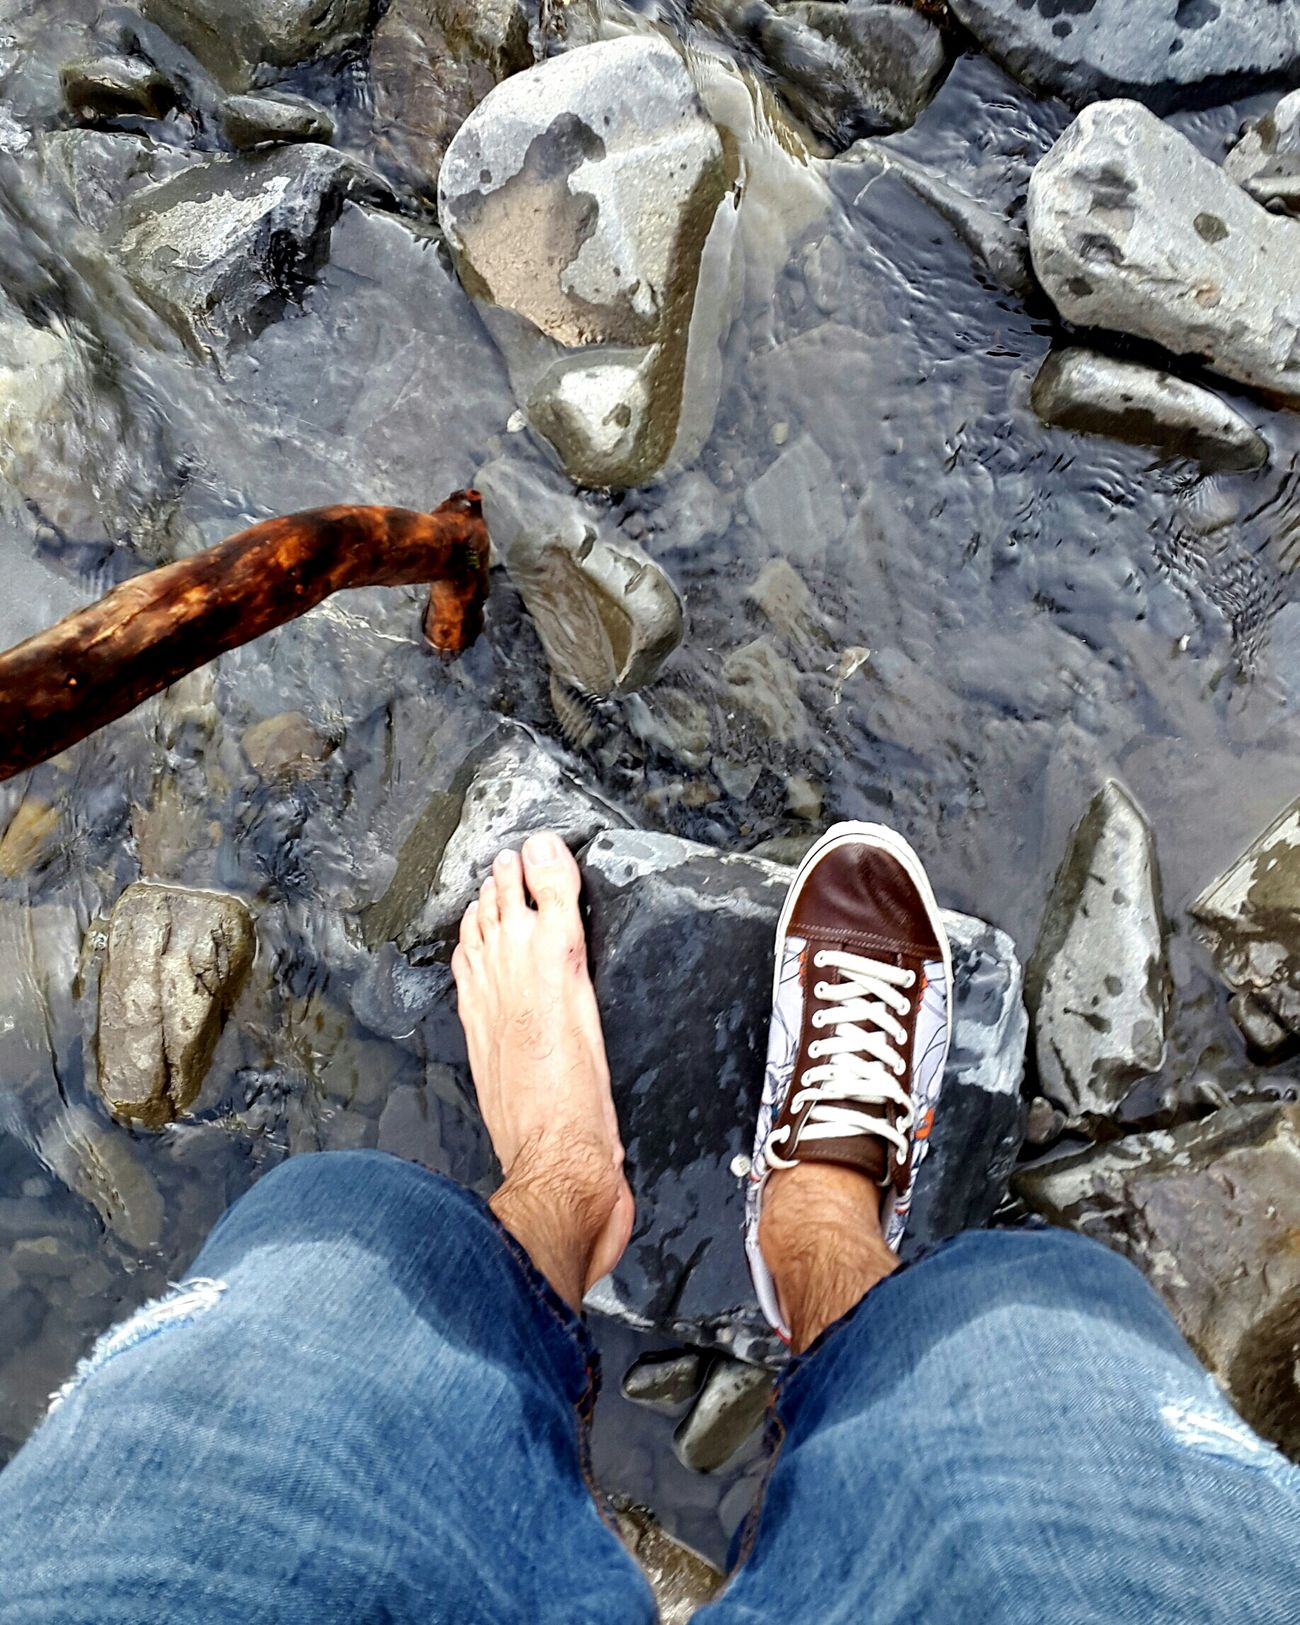 I have lost a pair of my boots in the river Summer Hello World Eyemphotography Beauty In Nature VSCO EyeEm Best Shots Azerbaycan Myazerbaijan Mylandazerbaijan Taking Photos Boots N Jeans Gal💝 Boots On The Ground Amazing Lookatthis Myazerbaijanaz Travel Photography Travelling Trip Gotrip Landscape Stones & Water Theriver Followme Likeforlike #likemyphoto #qlikemyphotos #like4like #likemypic #likeback #ilikeback #10likes #50likes #100likes #20likes #likere Mobilephotography